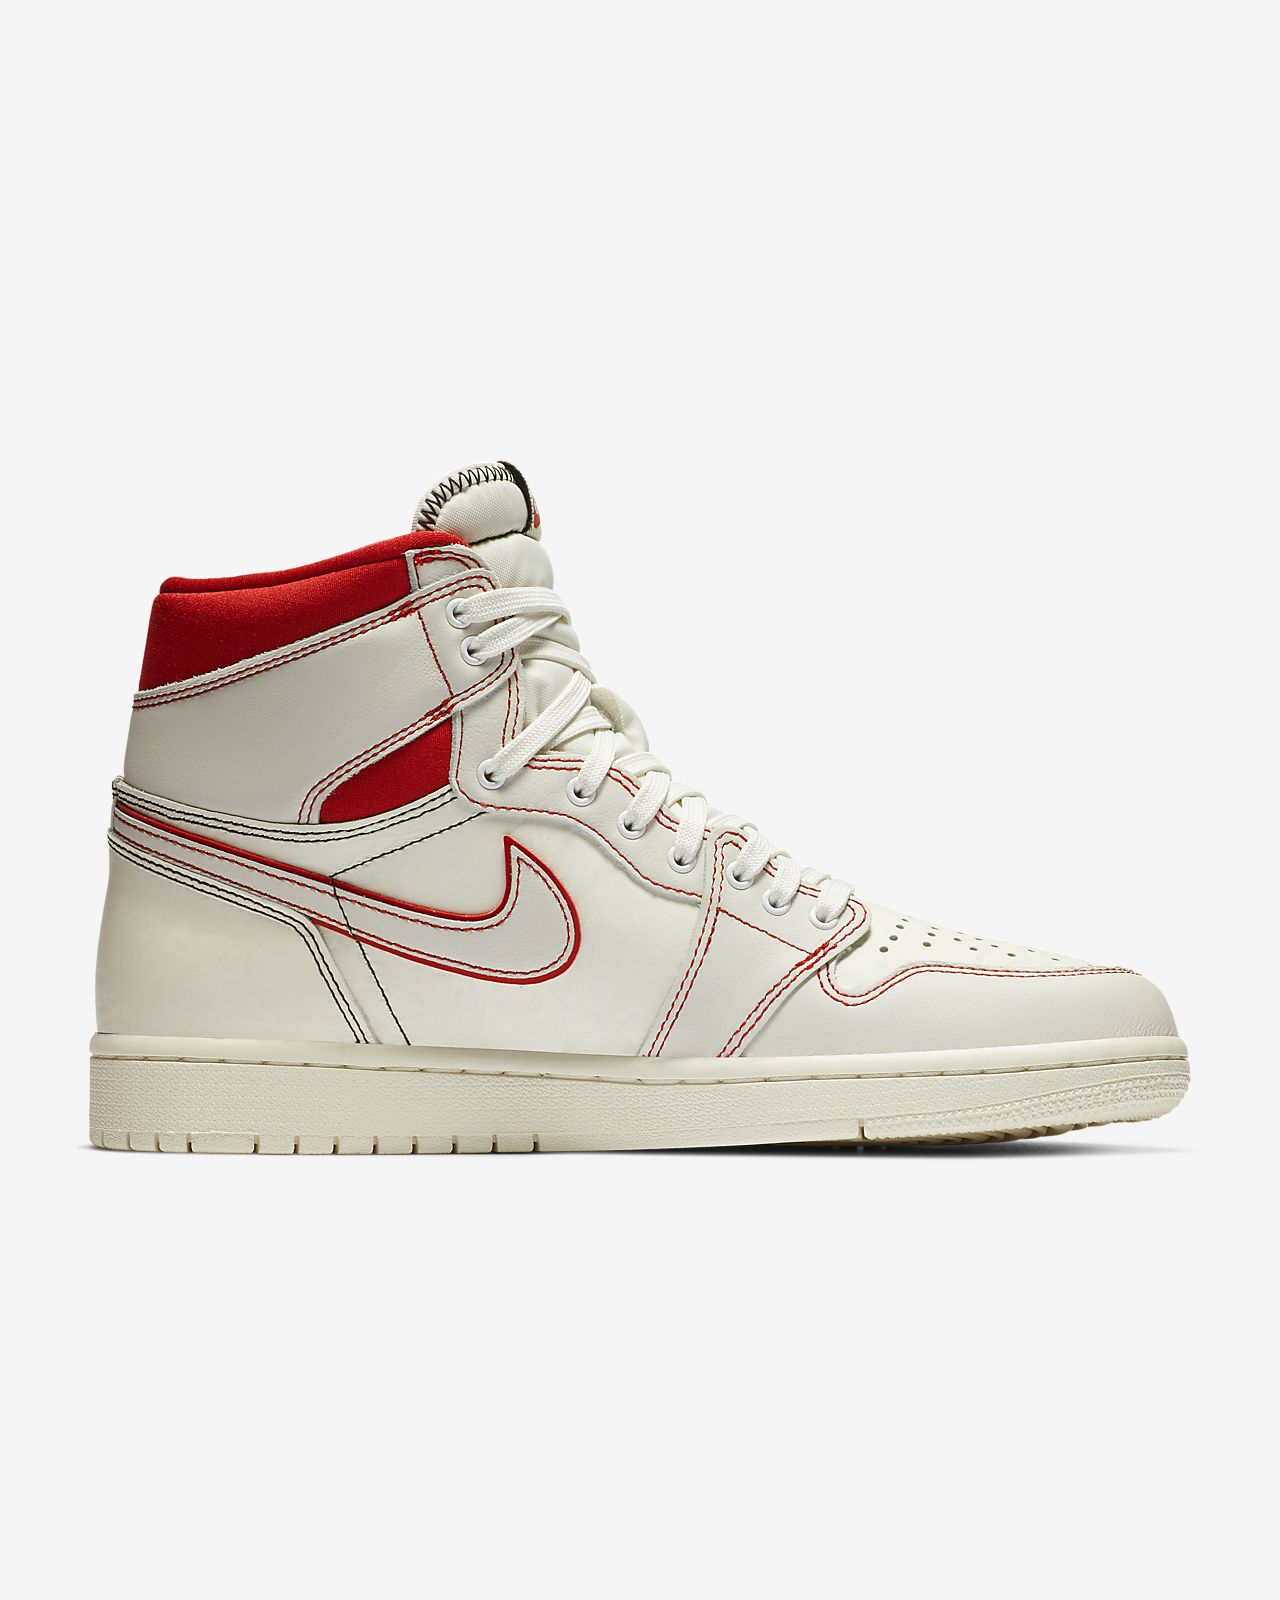 new styles 3196d e0c74 ... Air Jordan 1 Retro High OG Shoe